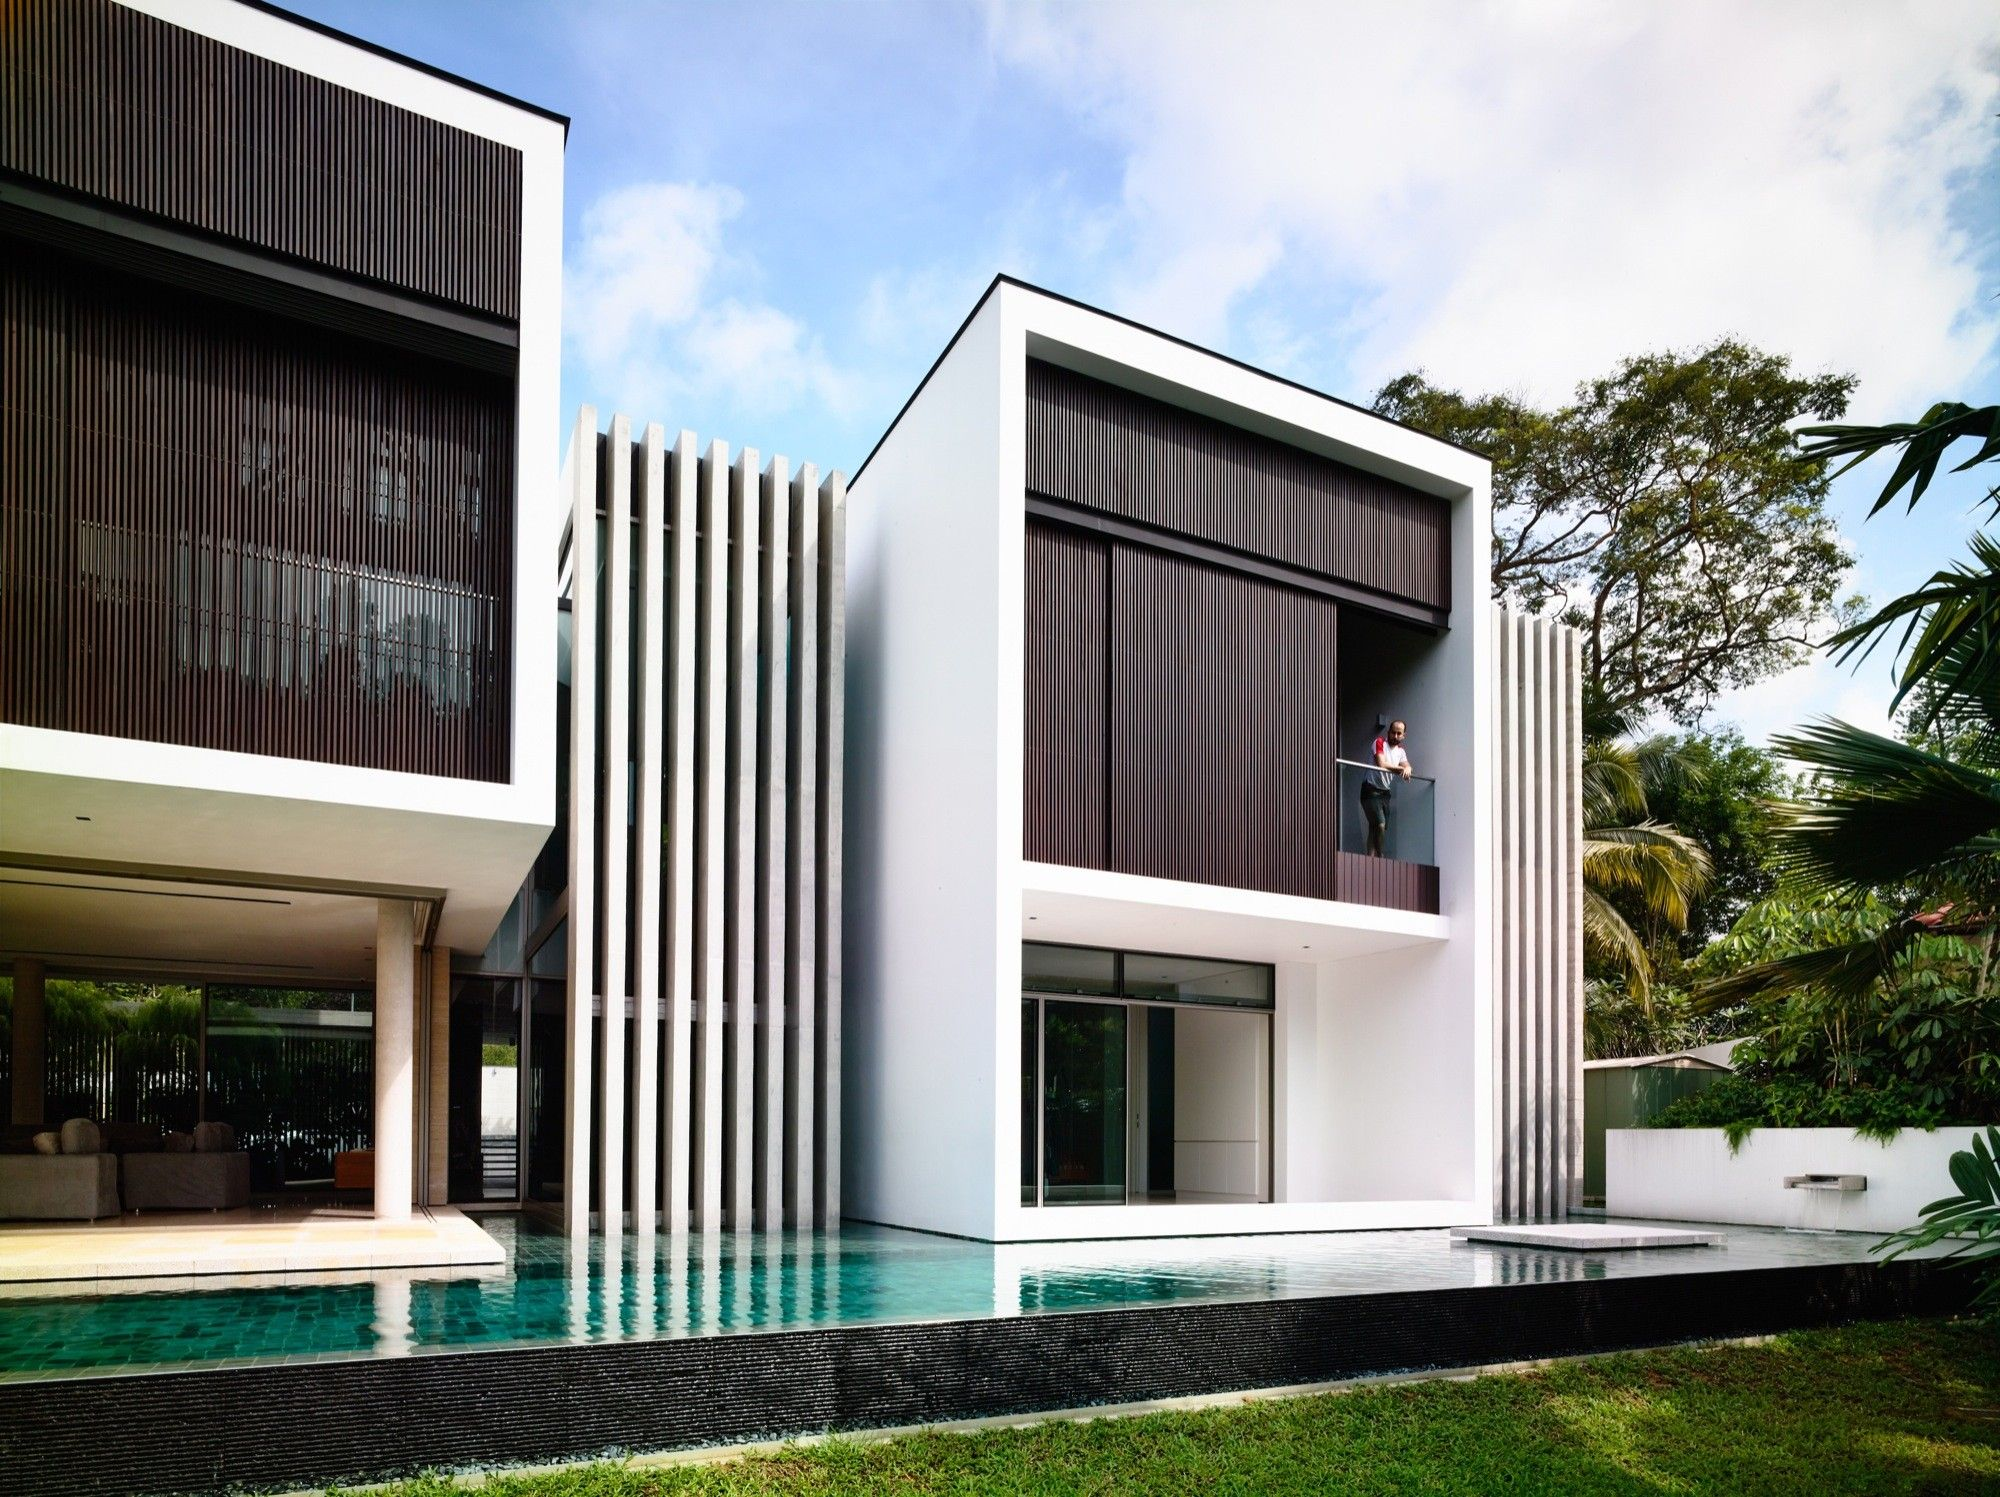 59btp house ong ong pte ltd house architecture and